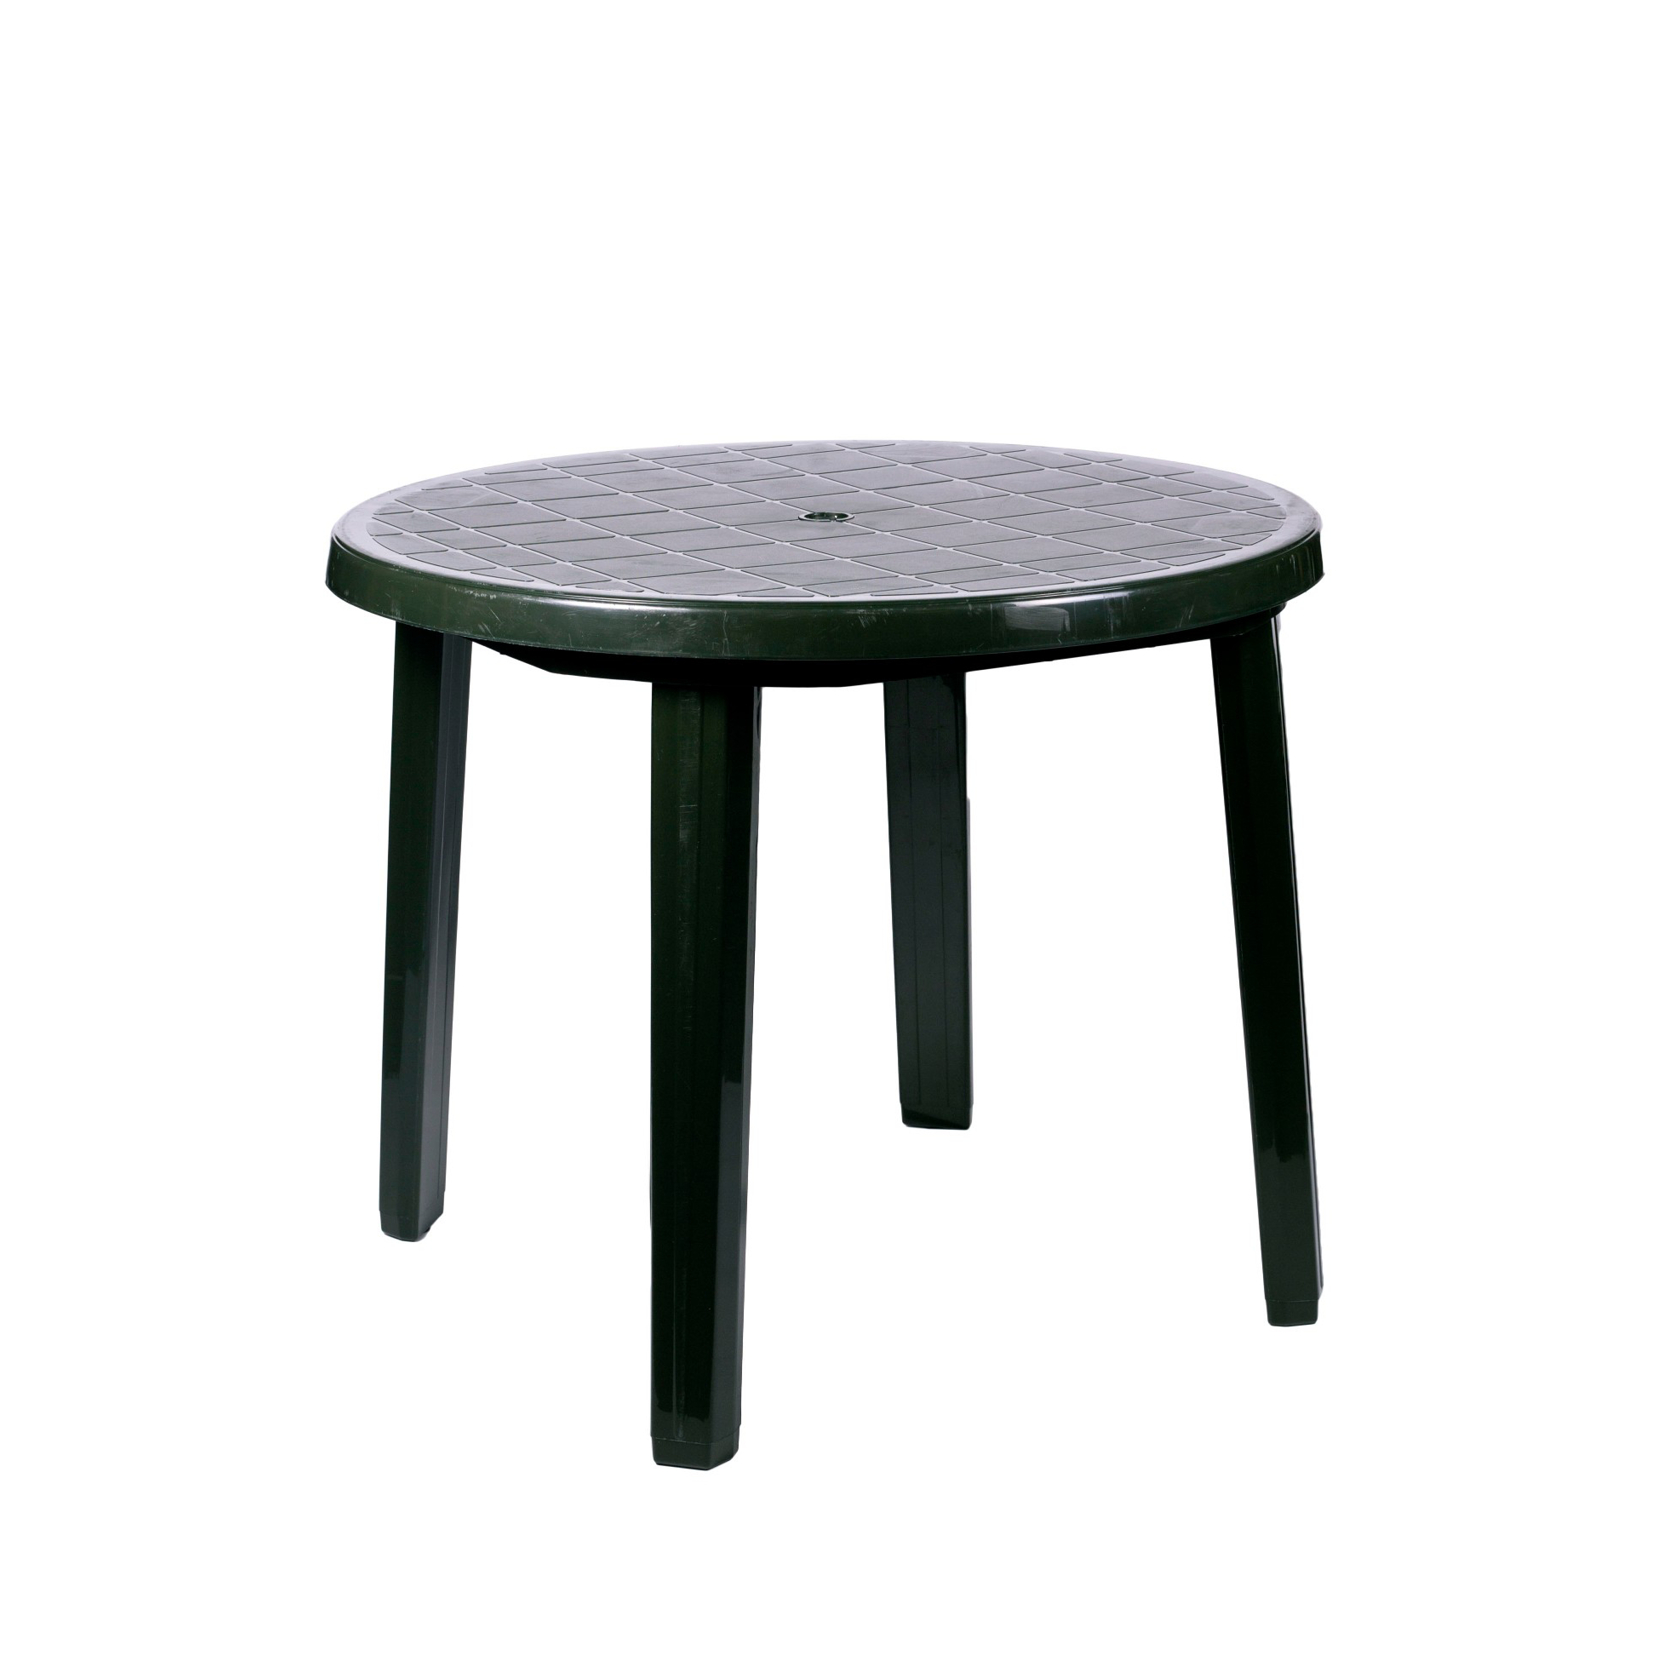 Plastic Patio Table Green intended for sizing 1667 X 1667